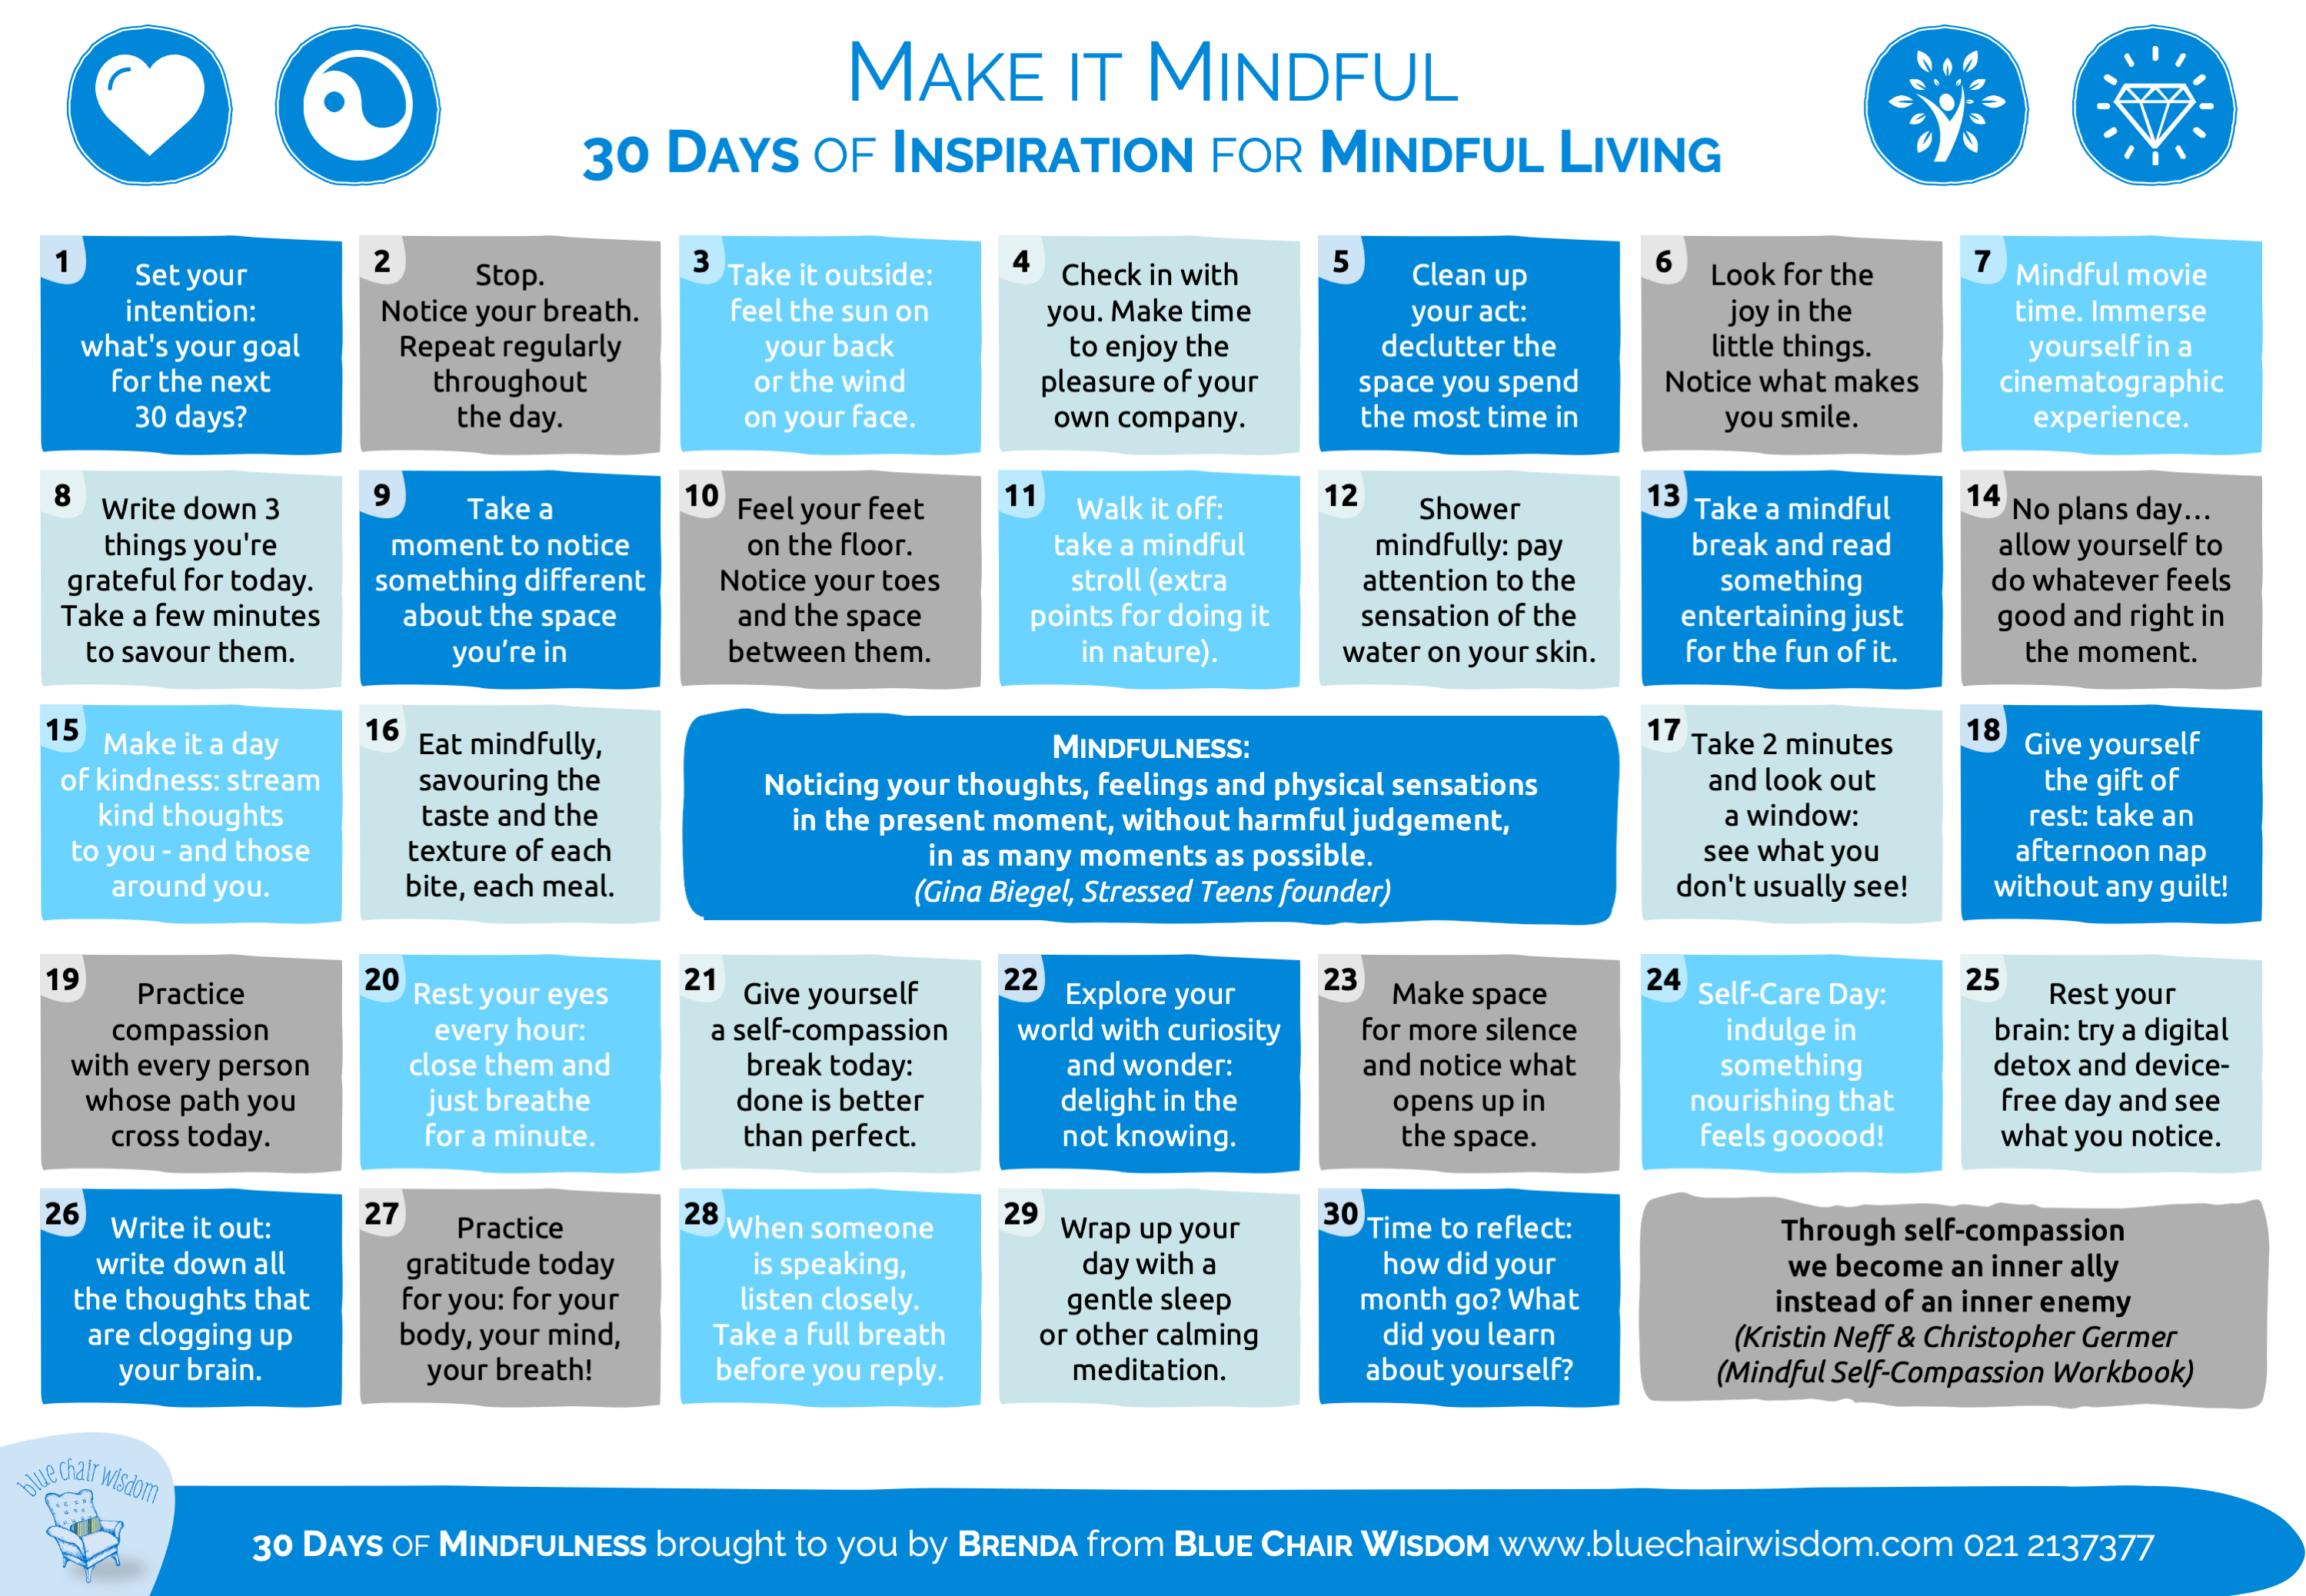 30 days of inspiration for mindful living